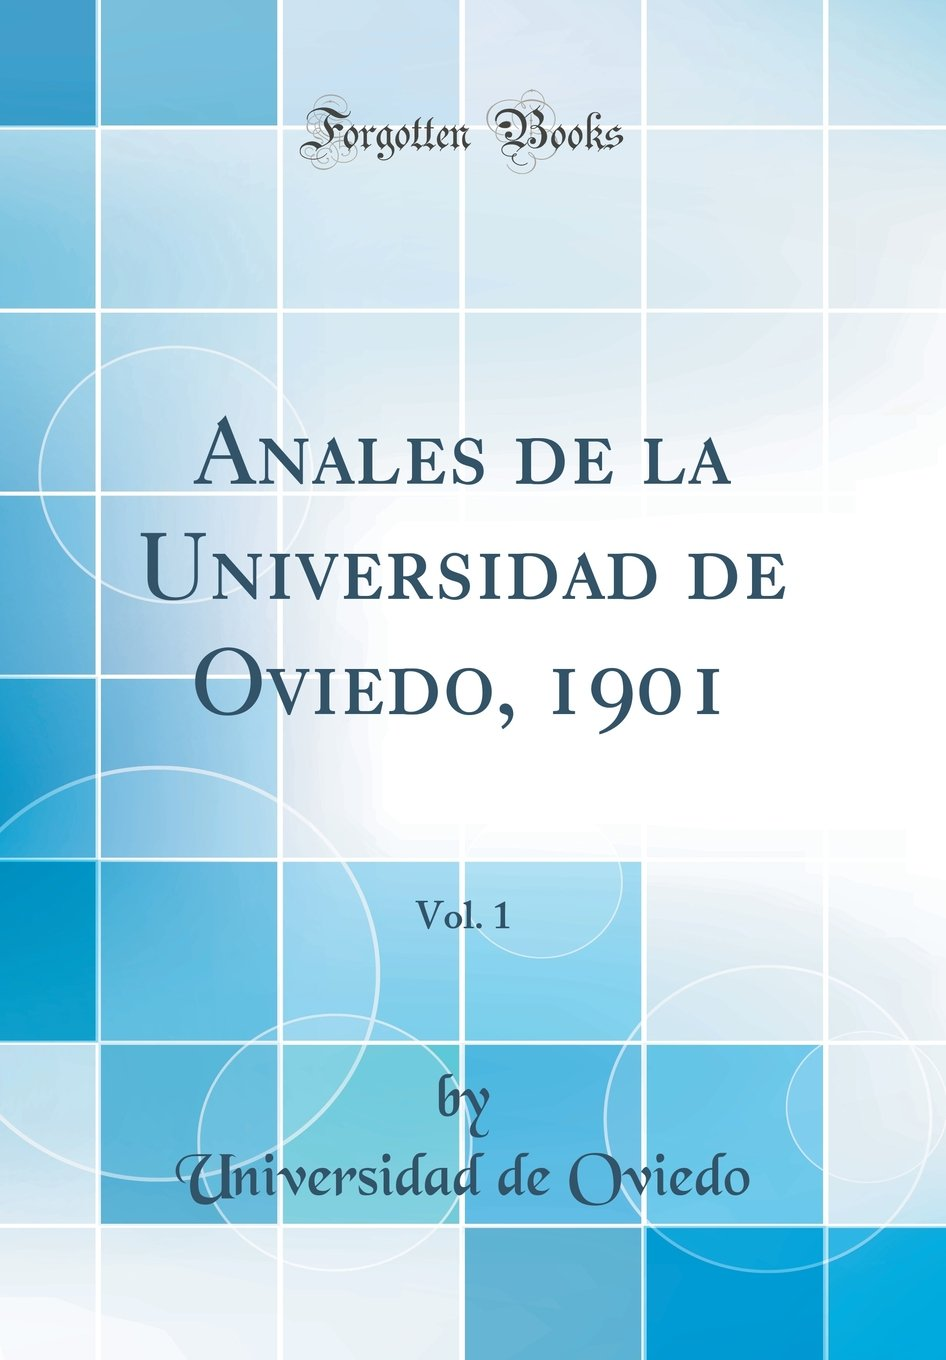 Anales de la Universidad de Oviedo, 1901, Vol. 1 (Classic Reprint) (Spanish Edition): Universidad De Oviedo: 9780260206084: Amazon.com: Books